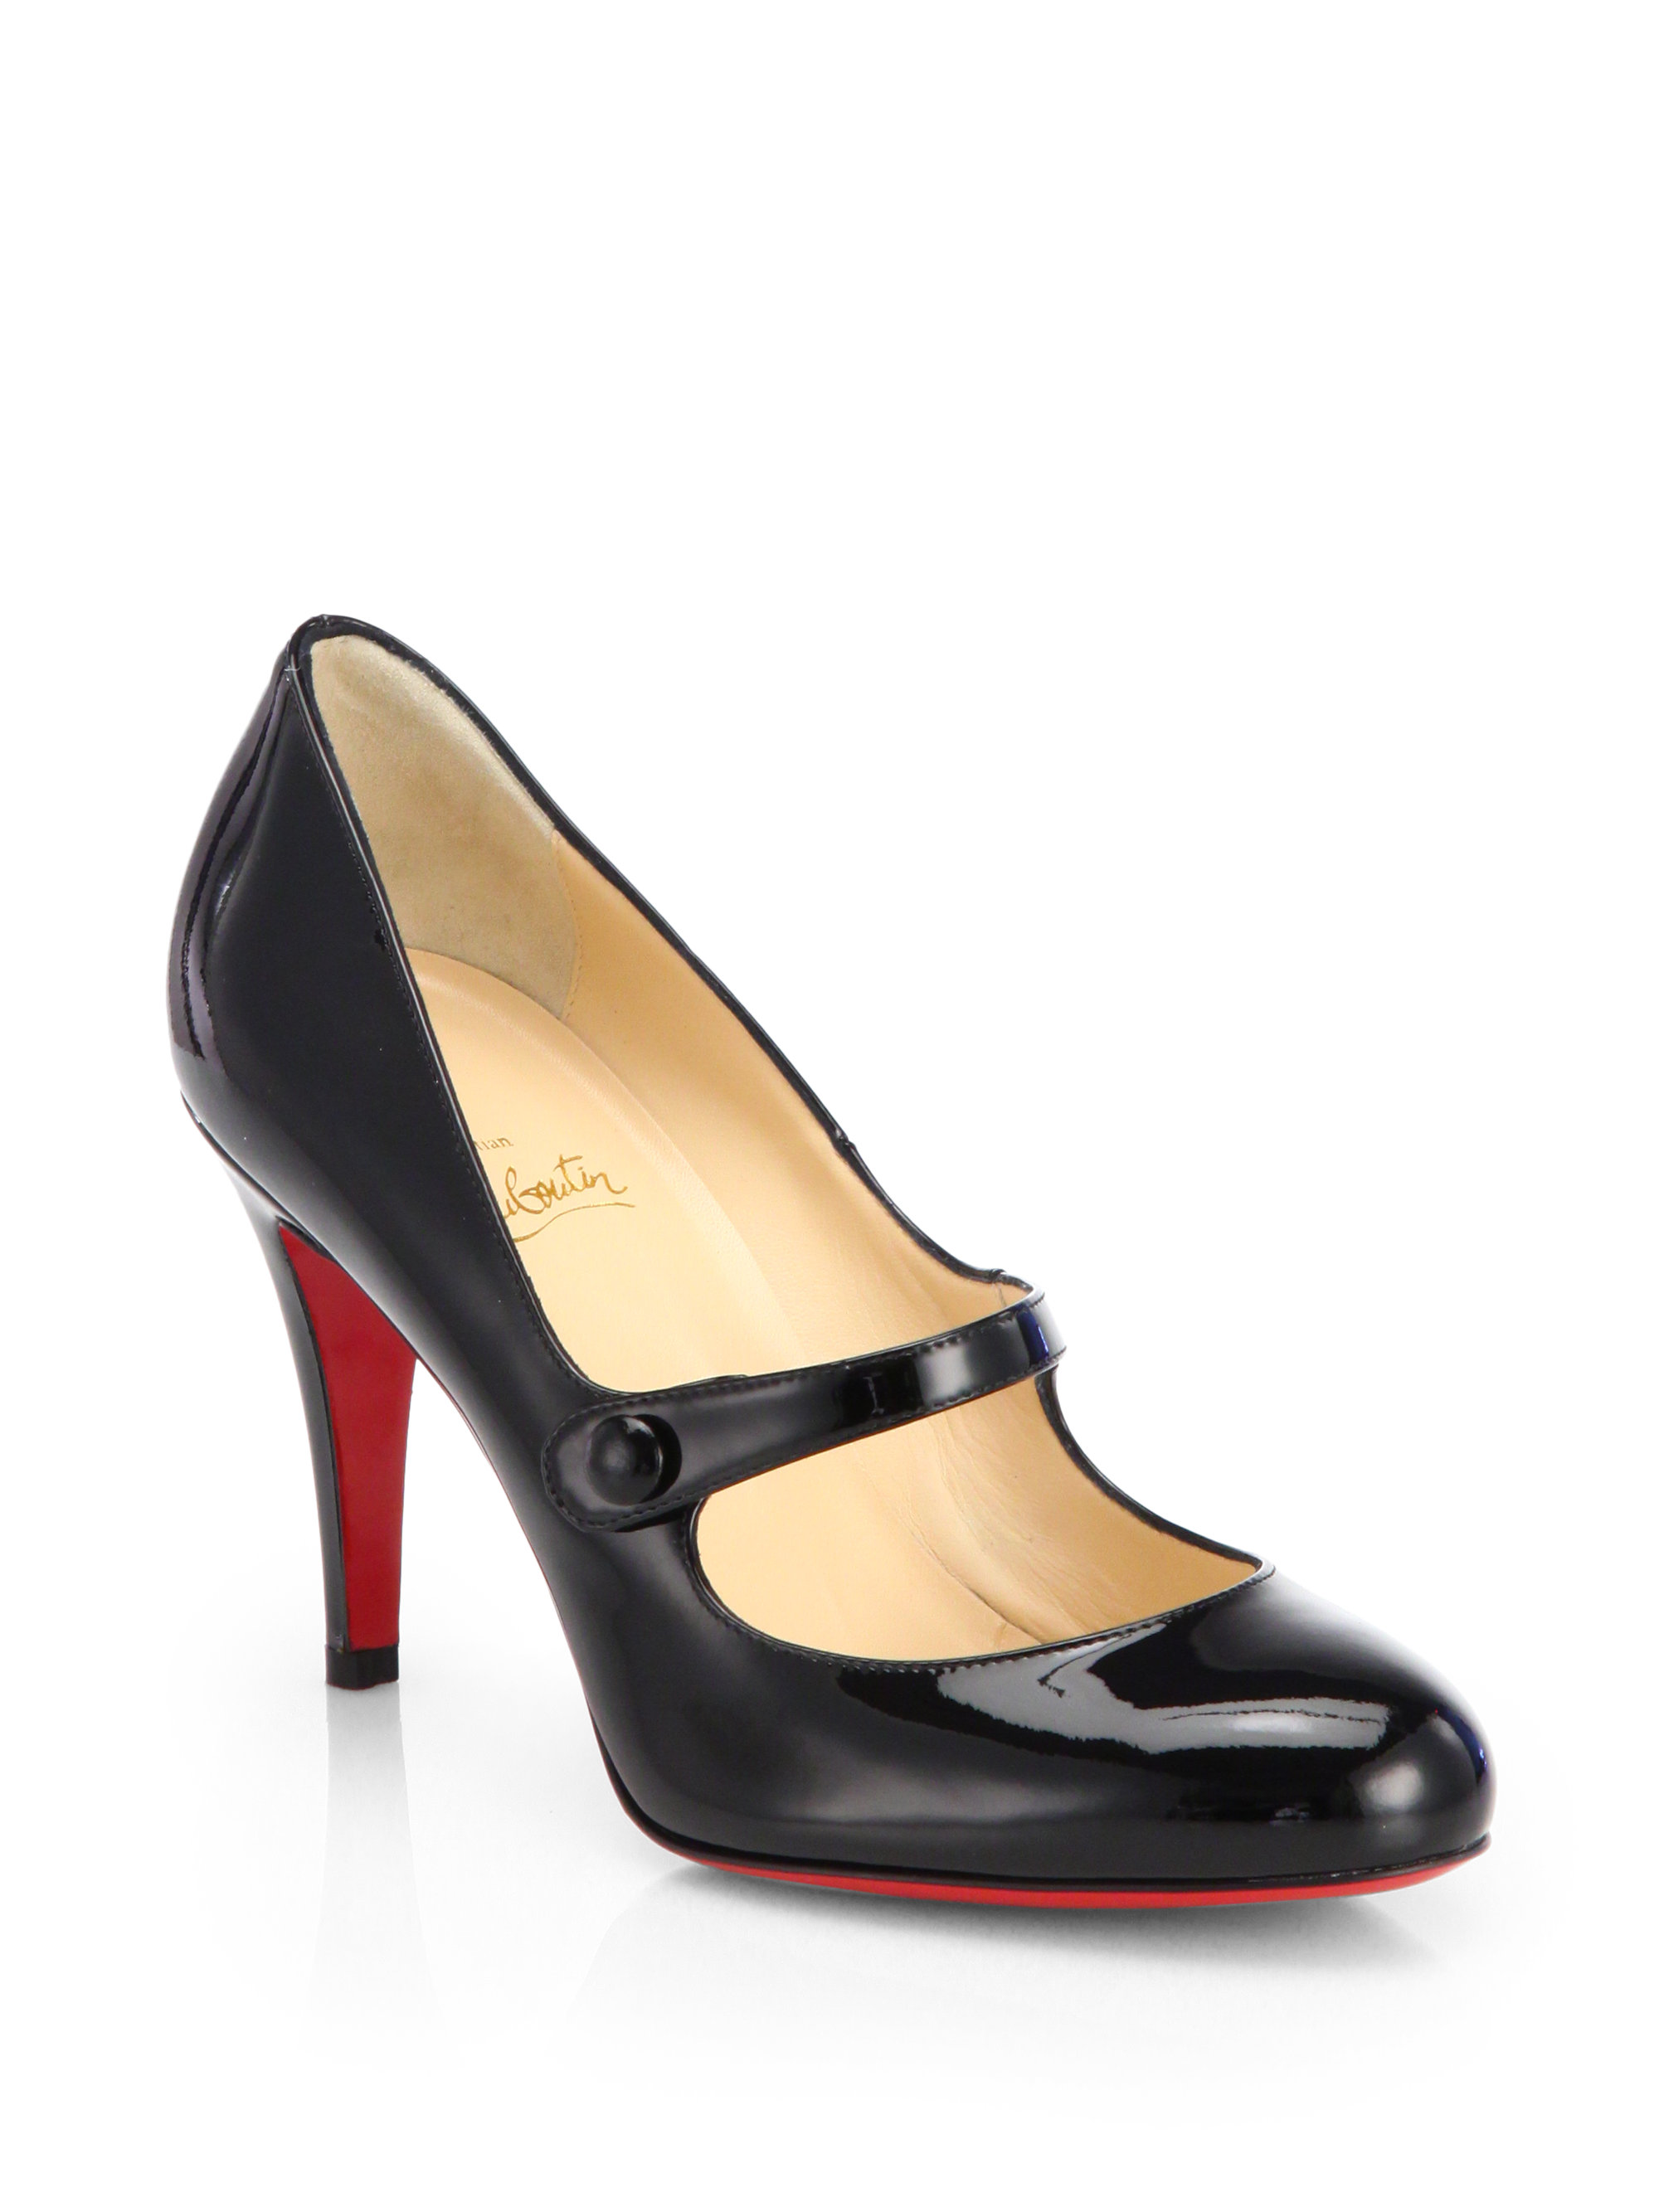 Christian Louboutin Leather Platform Mary Jane Pumps in